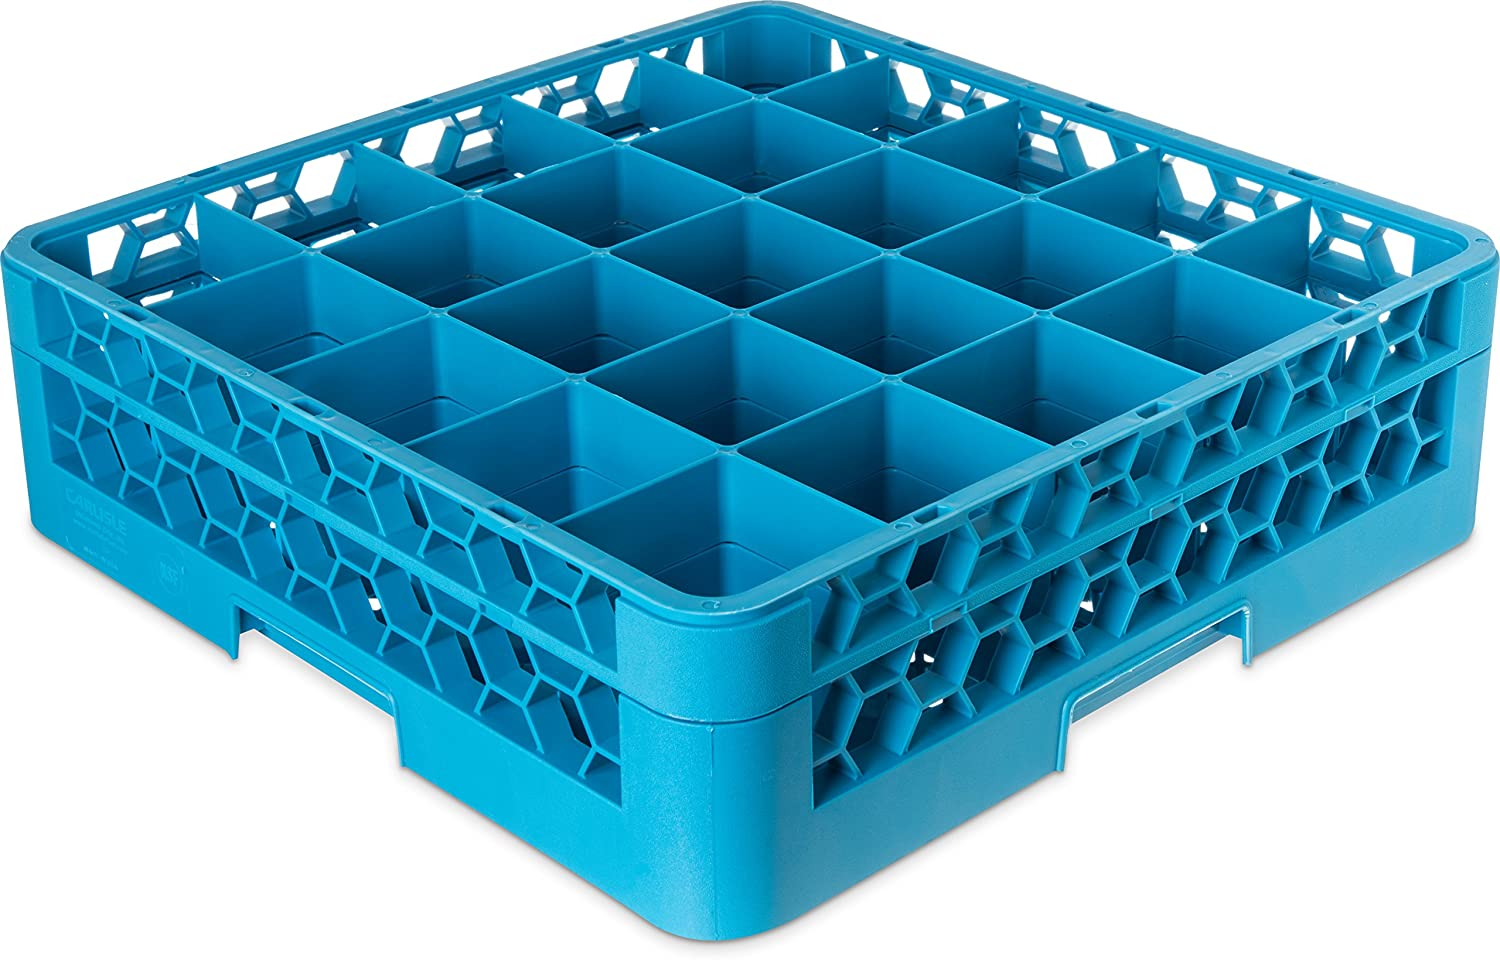 "Carlisle RG25-114 OptiClean Polypropylene 25-Compartment Glass Rack with 1 Extender, 5.56"" x 19.75"" x 19.75"", Blue (Case of 4)"